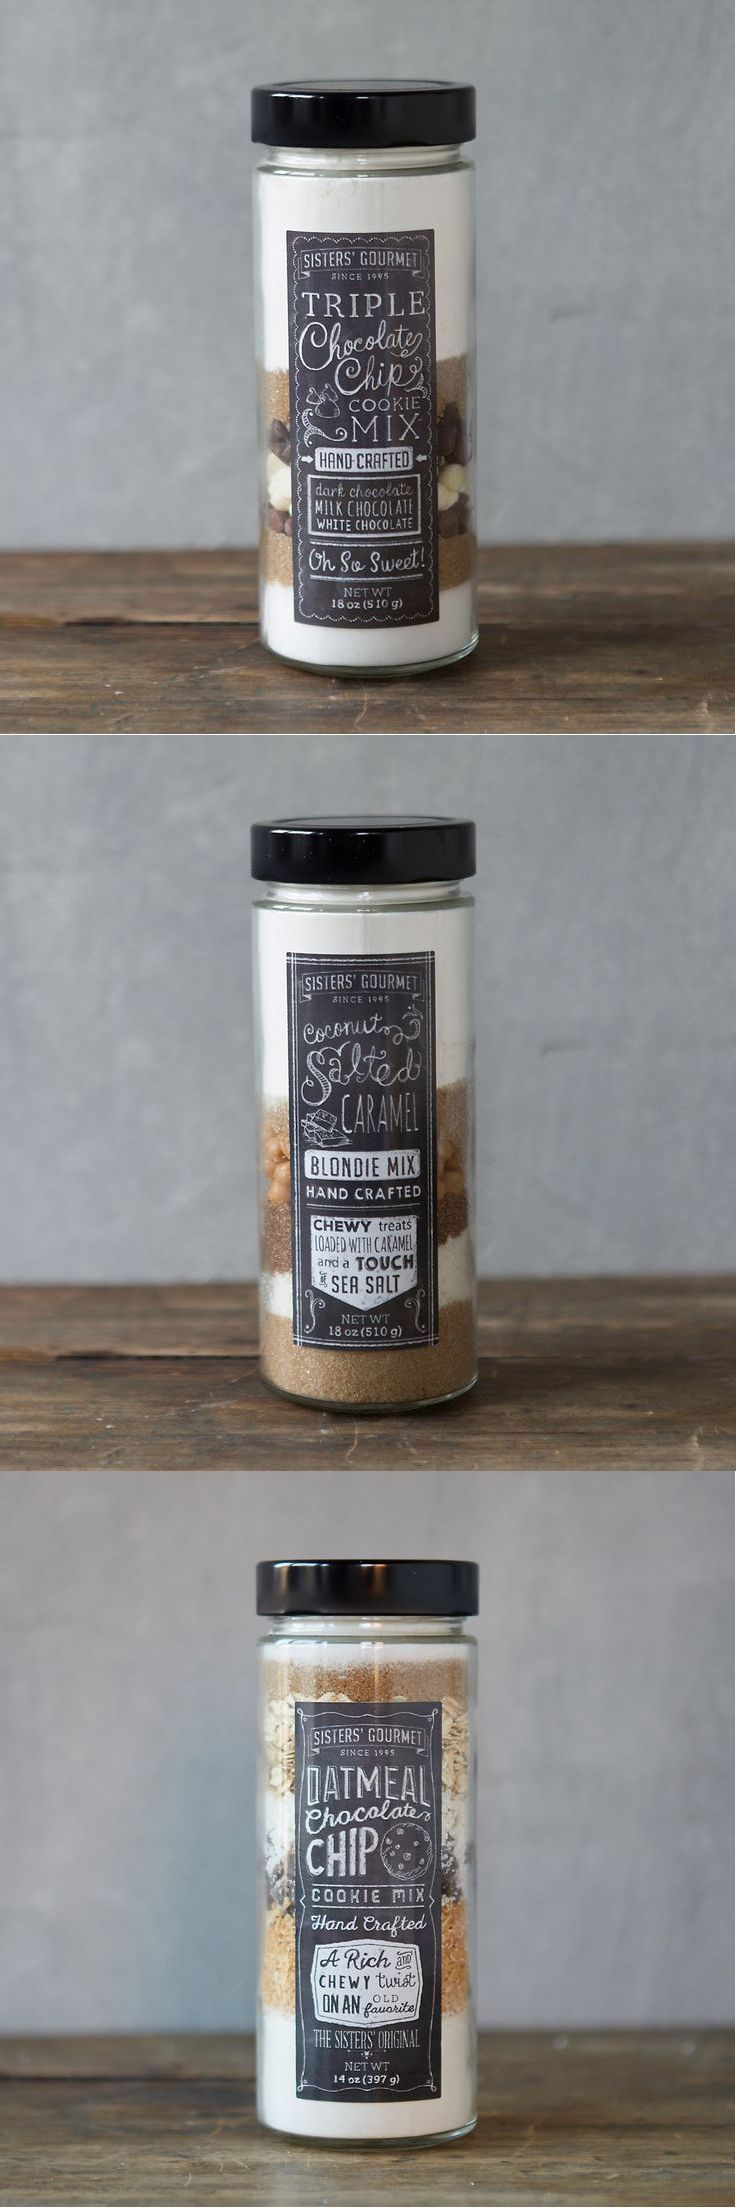 Love the label designs on these cookie mixes.  Each label is different with a rustic chalkboard style.   From Terrain holiday 2015